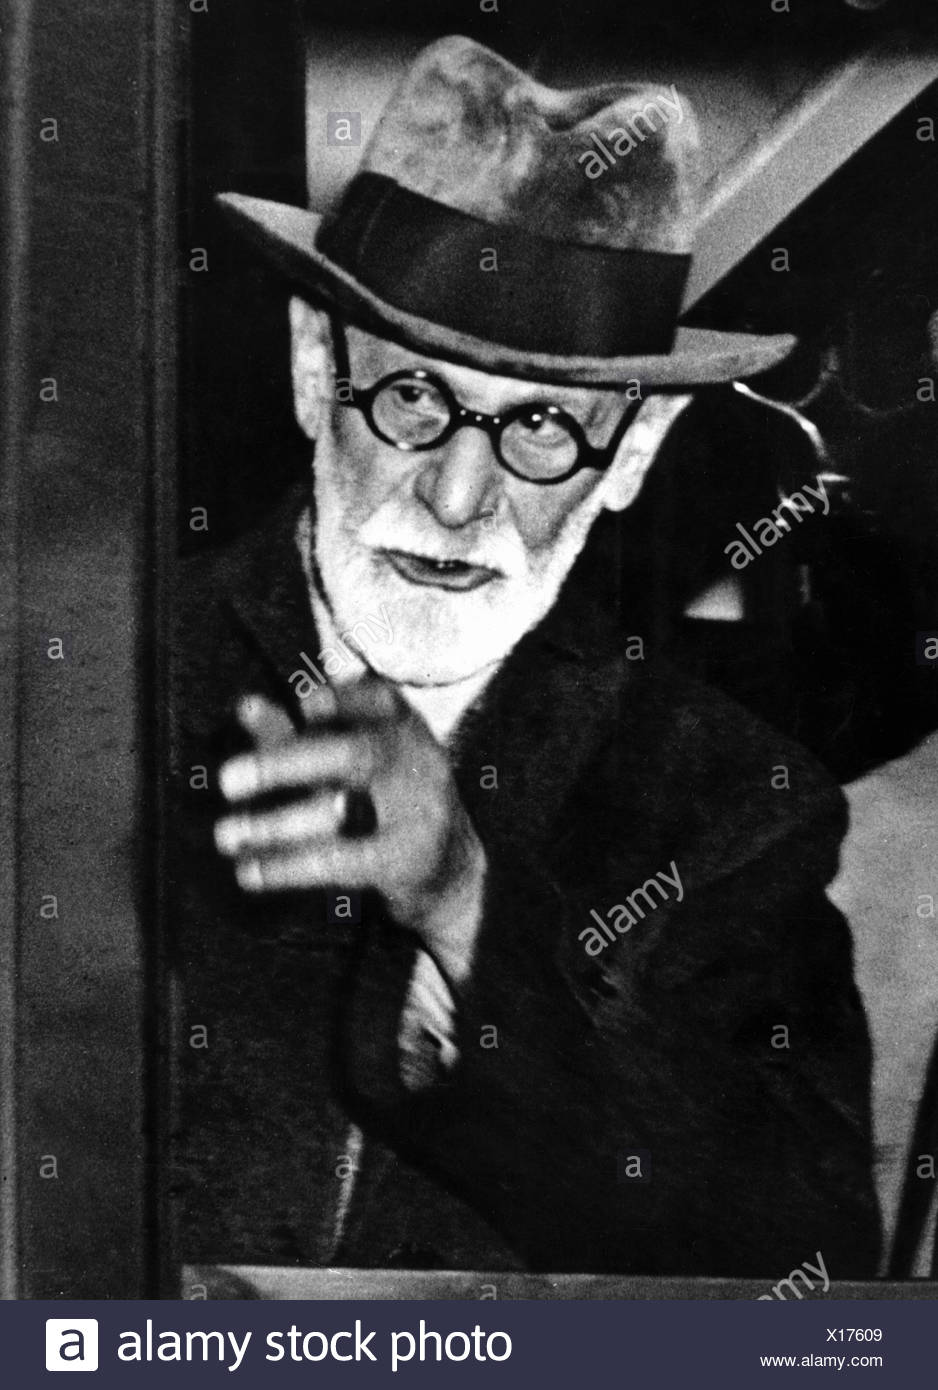 Freud, Sigmund, 6.5.1856 - 23.9.1939, Austrian physician, founder of the psychoanalytic school of psychology, as older man, Additional-Rights-Clearances-NA - Stock Image